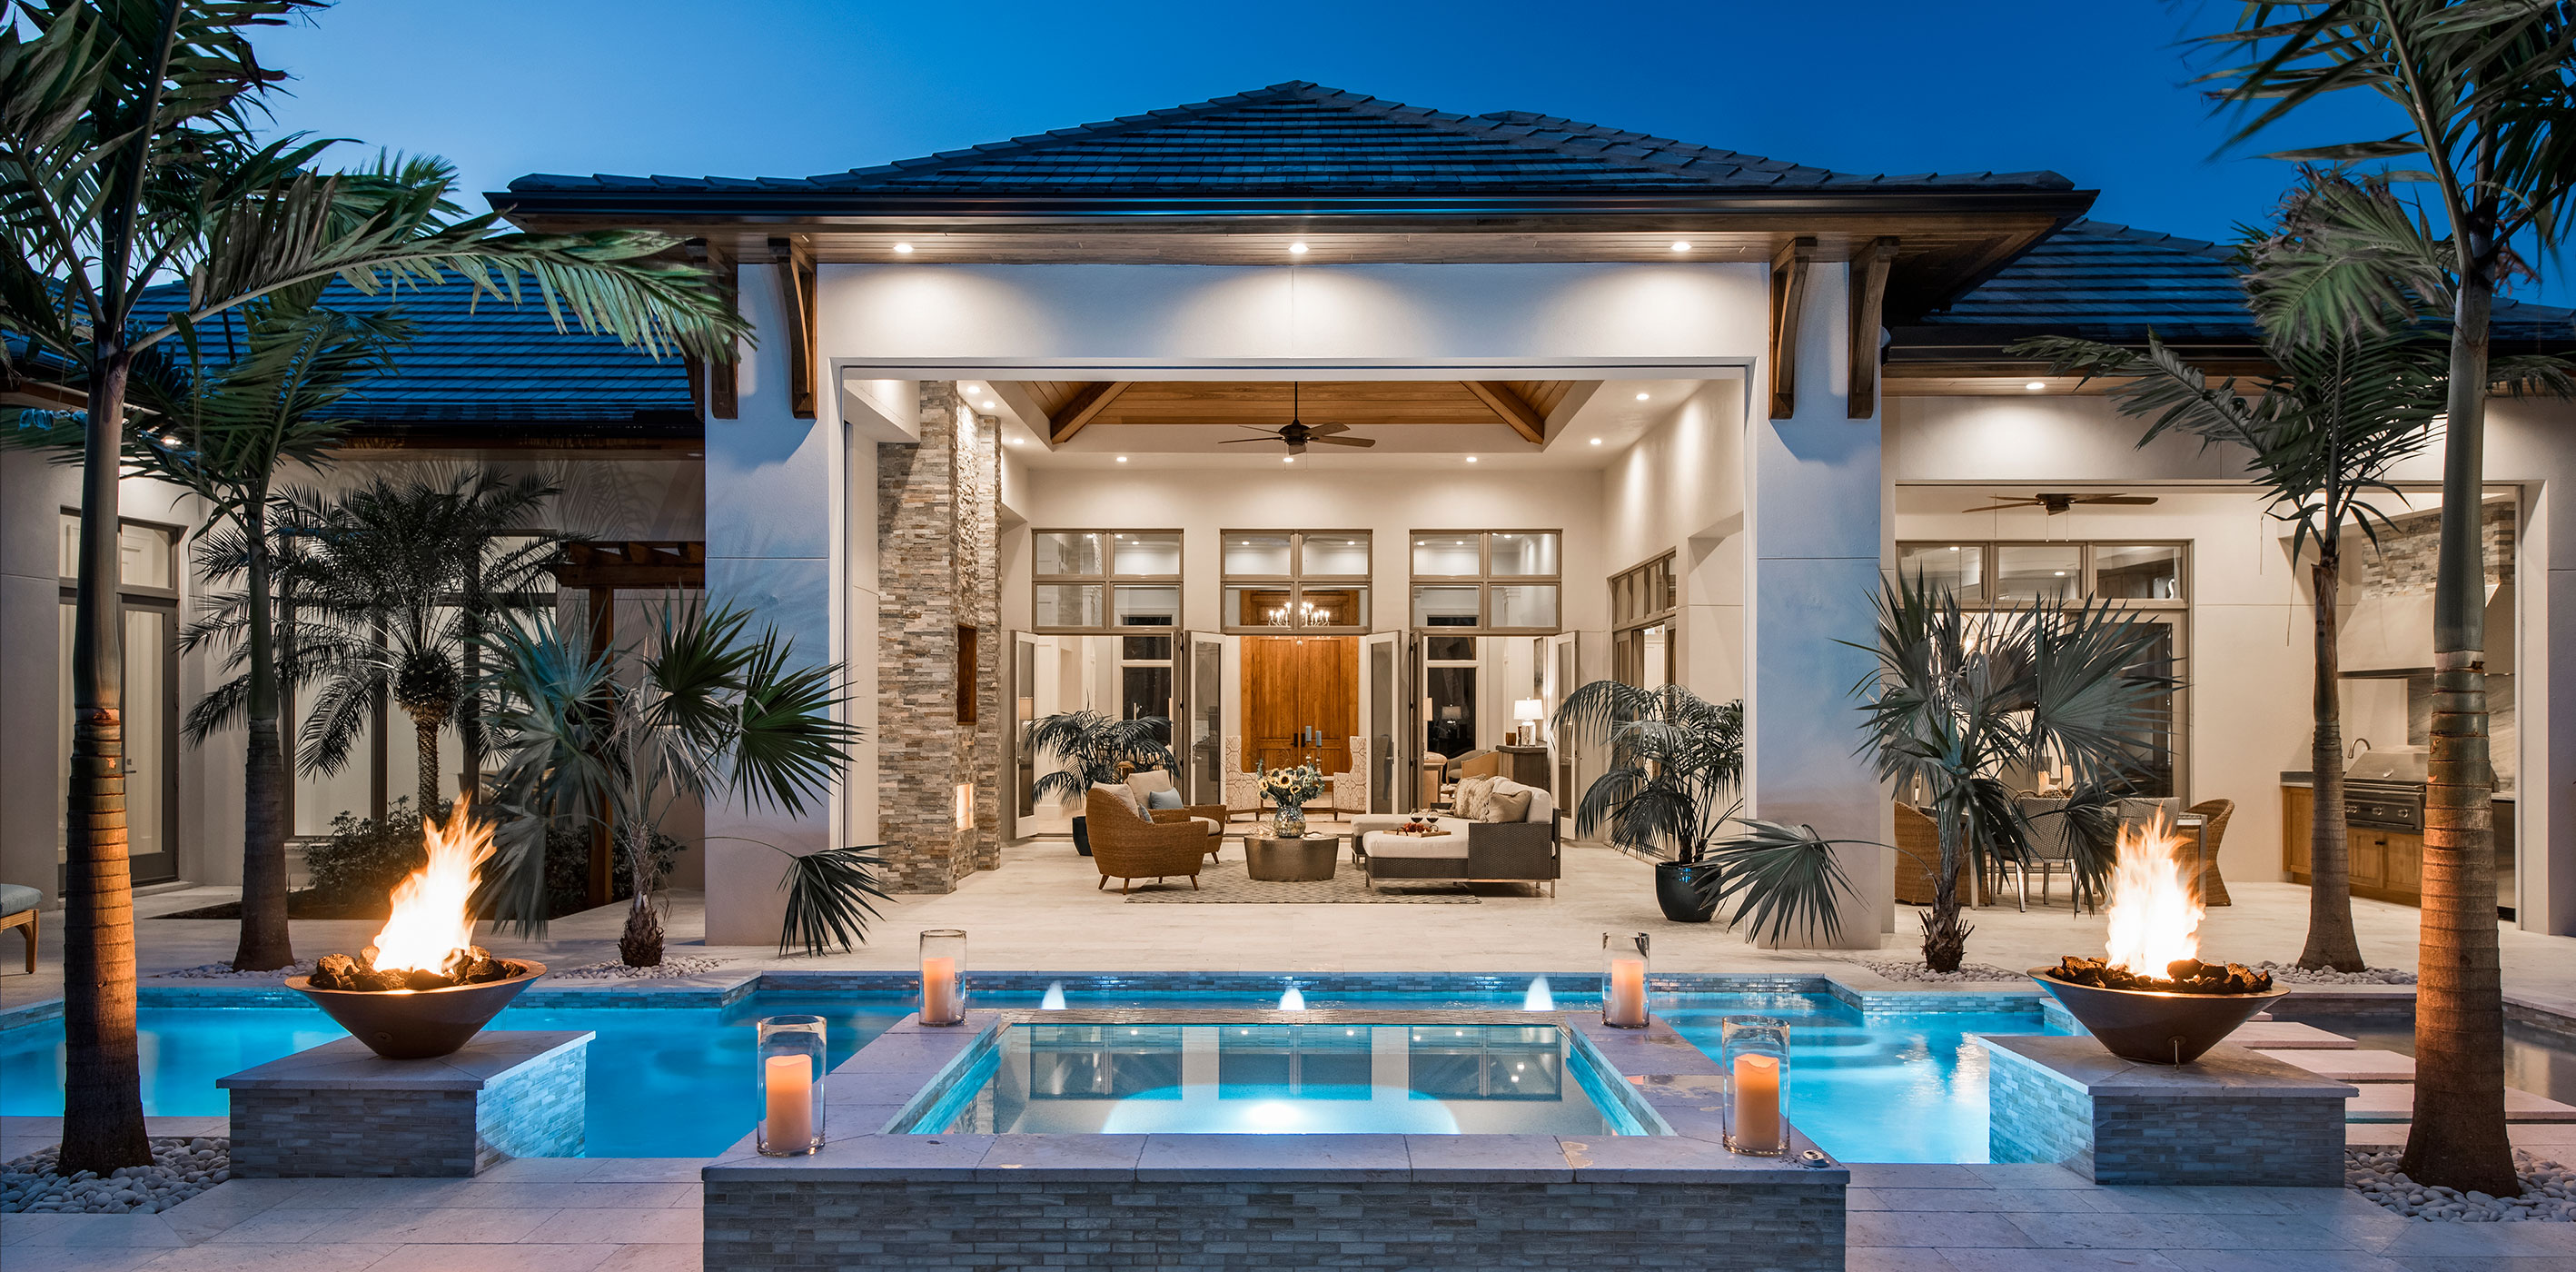 FLORIDA DESIGN MAGAZINE: Creating Coastal Elegance